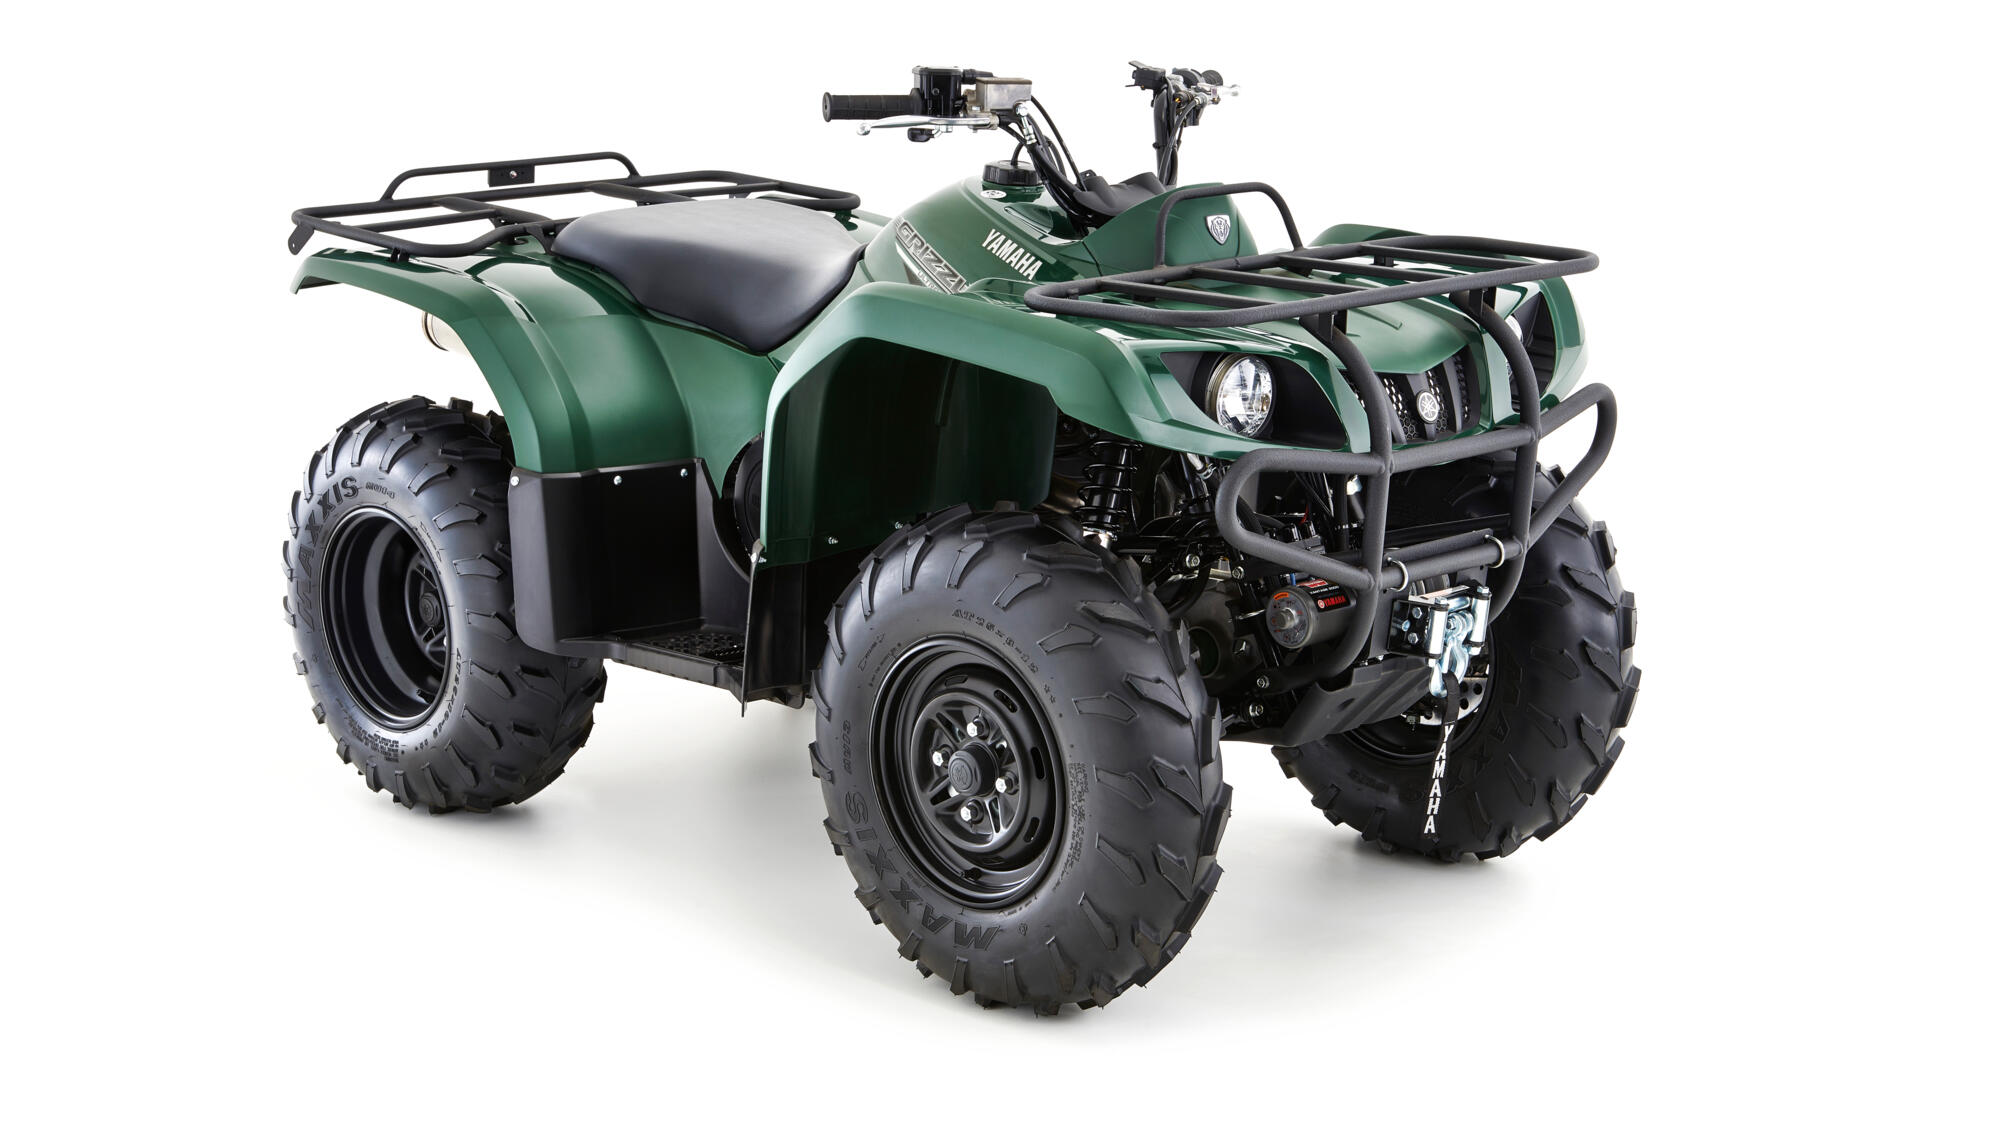 hight resolution of grizzly 350 4wd atv yamaha motor 2004 yamaha grizzly 660 engine diagram grizzly 350 4wd grizzly